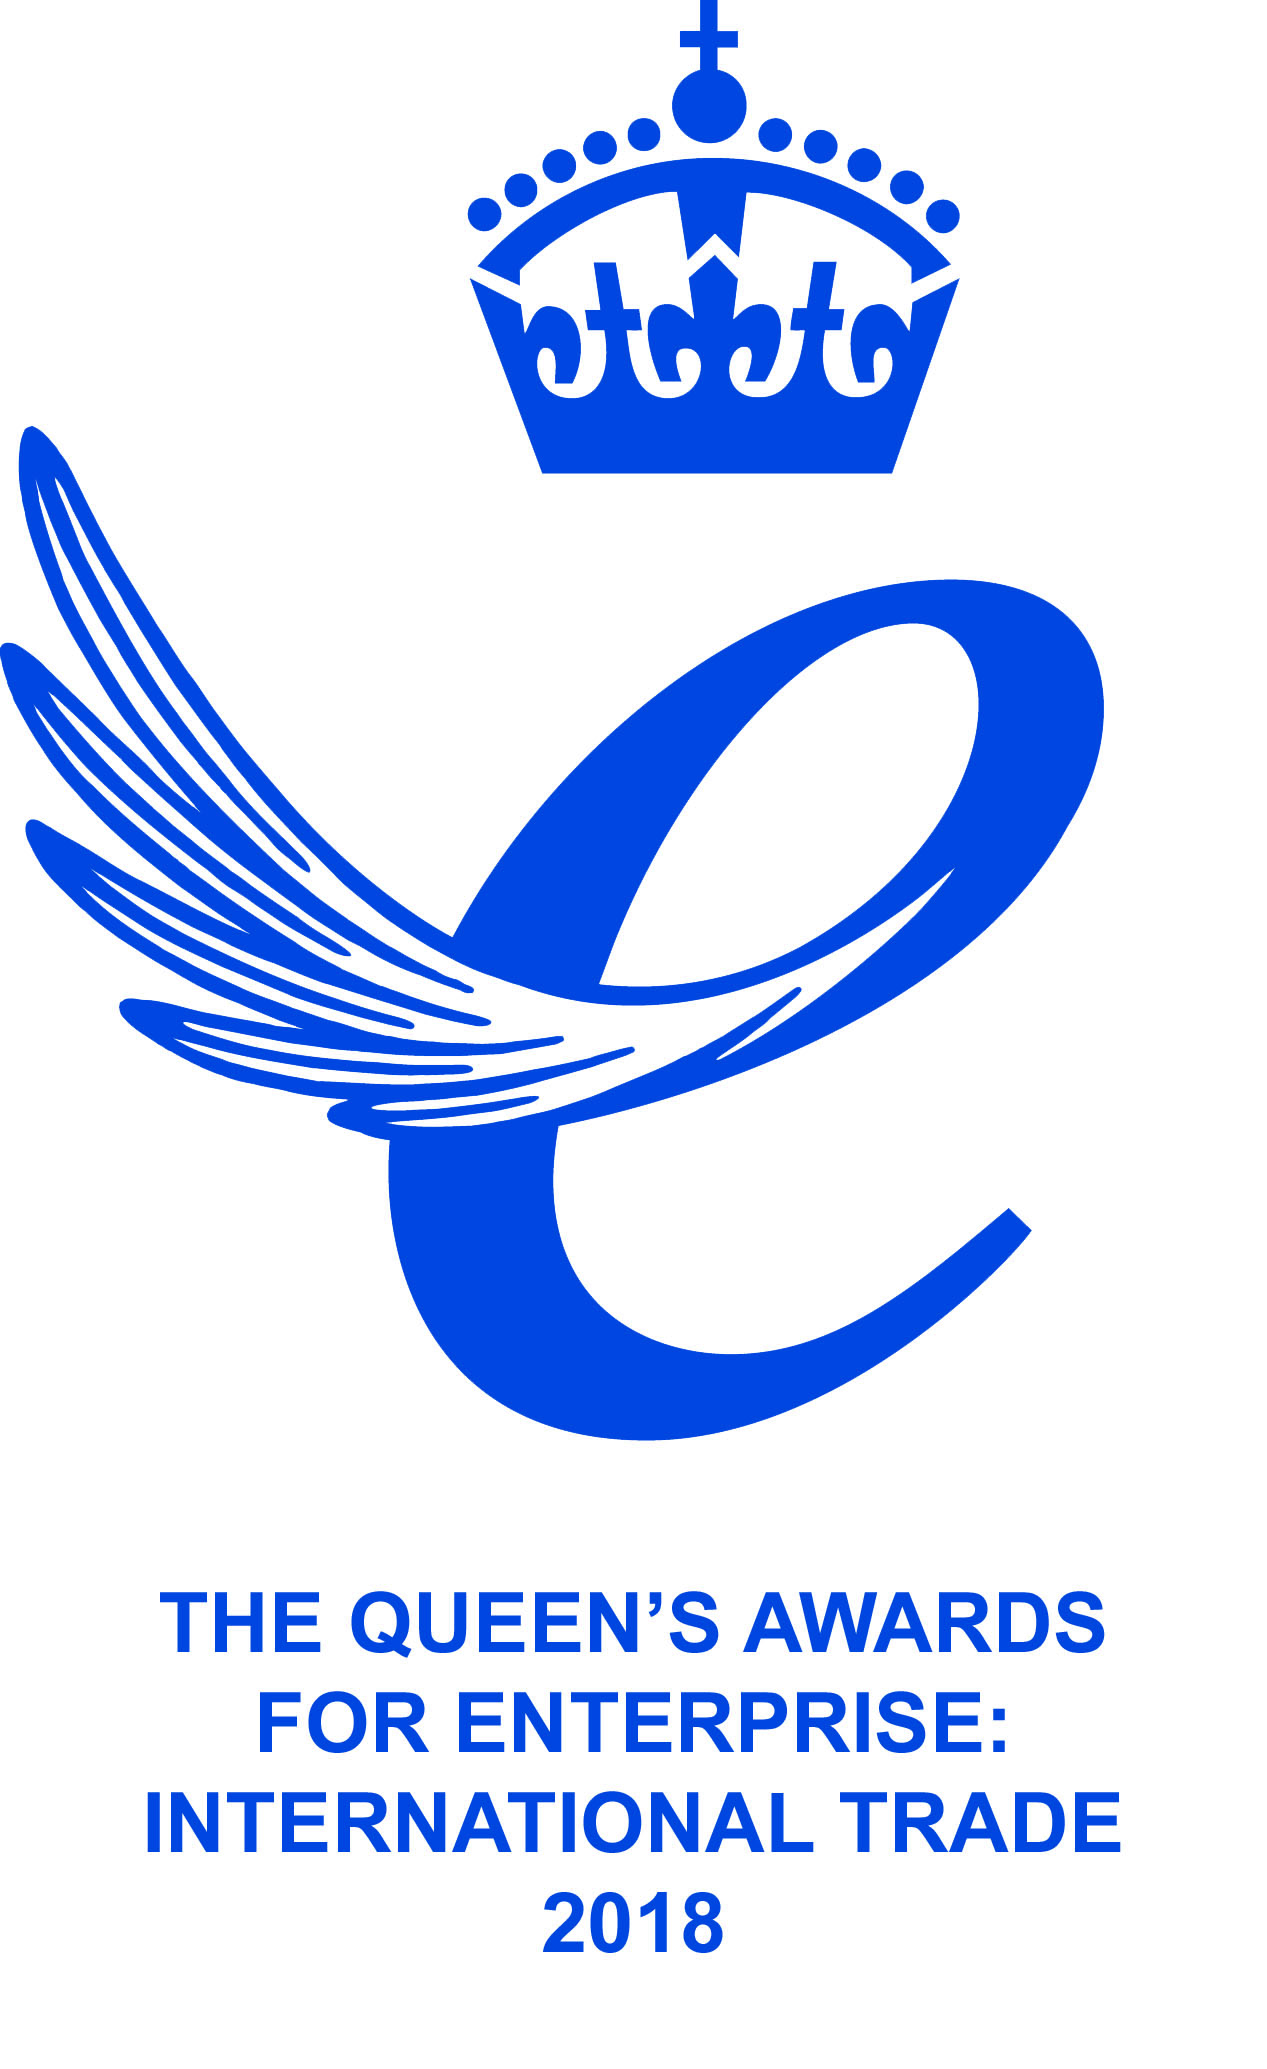 Lattimer wins Queen's Award for Enterprise